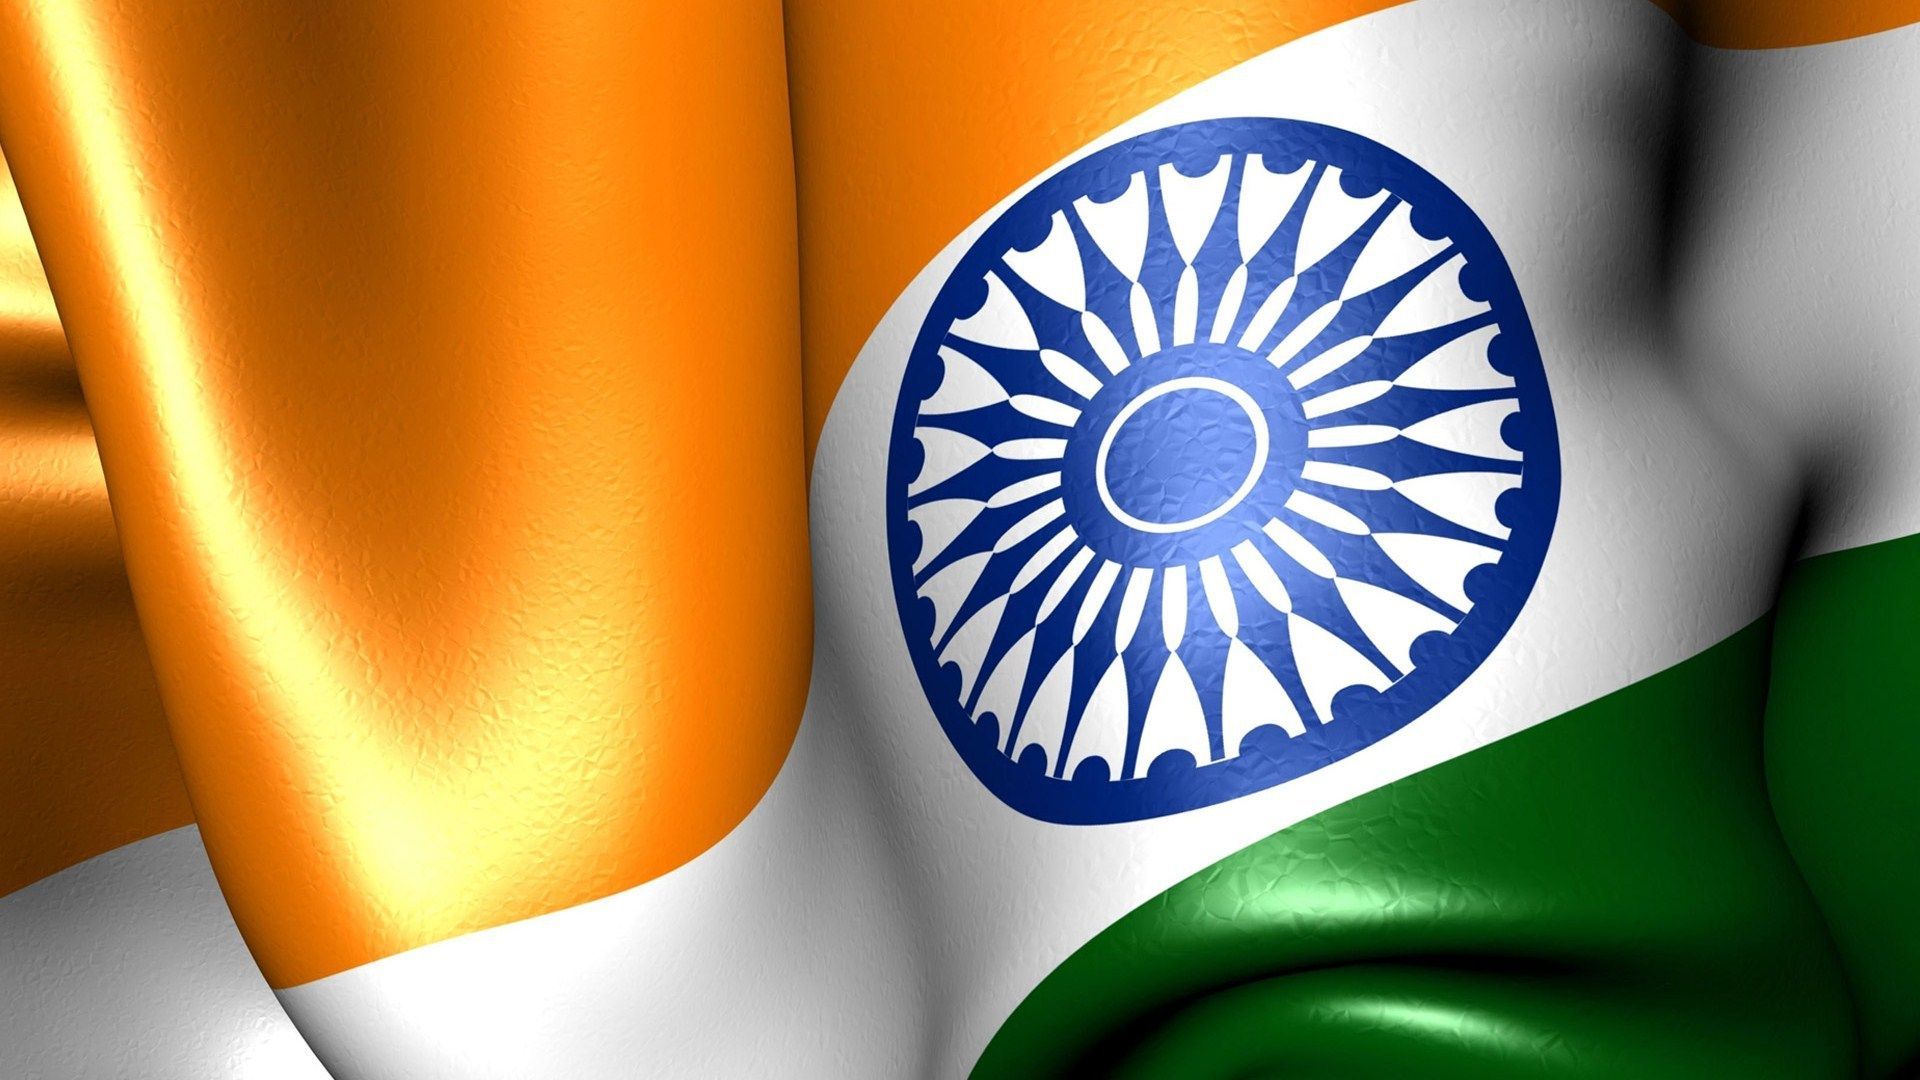 Download indian flag hd images wallpapers photos and for India wallpaper 3d